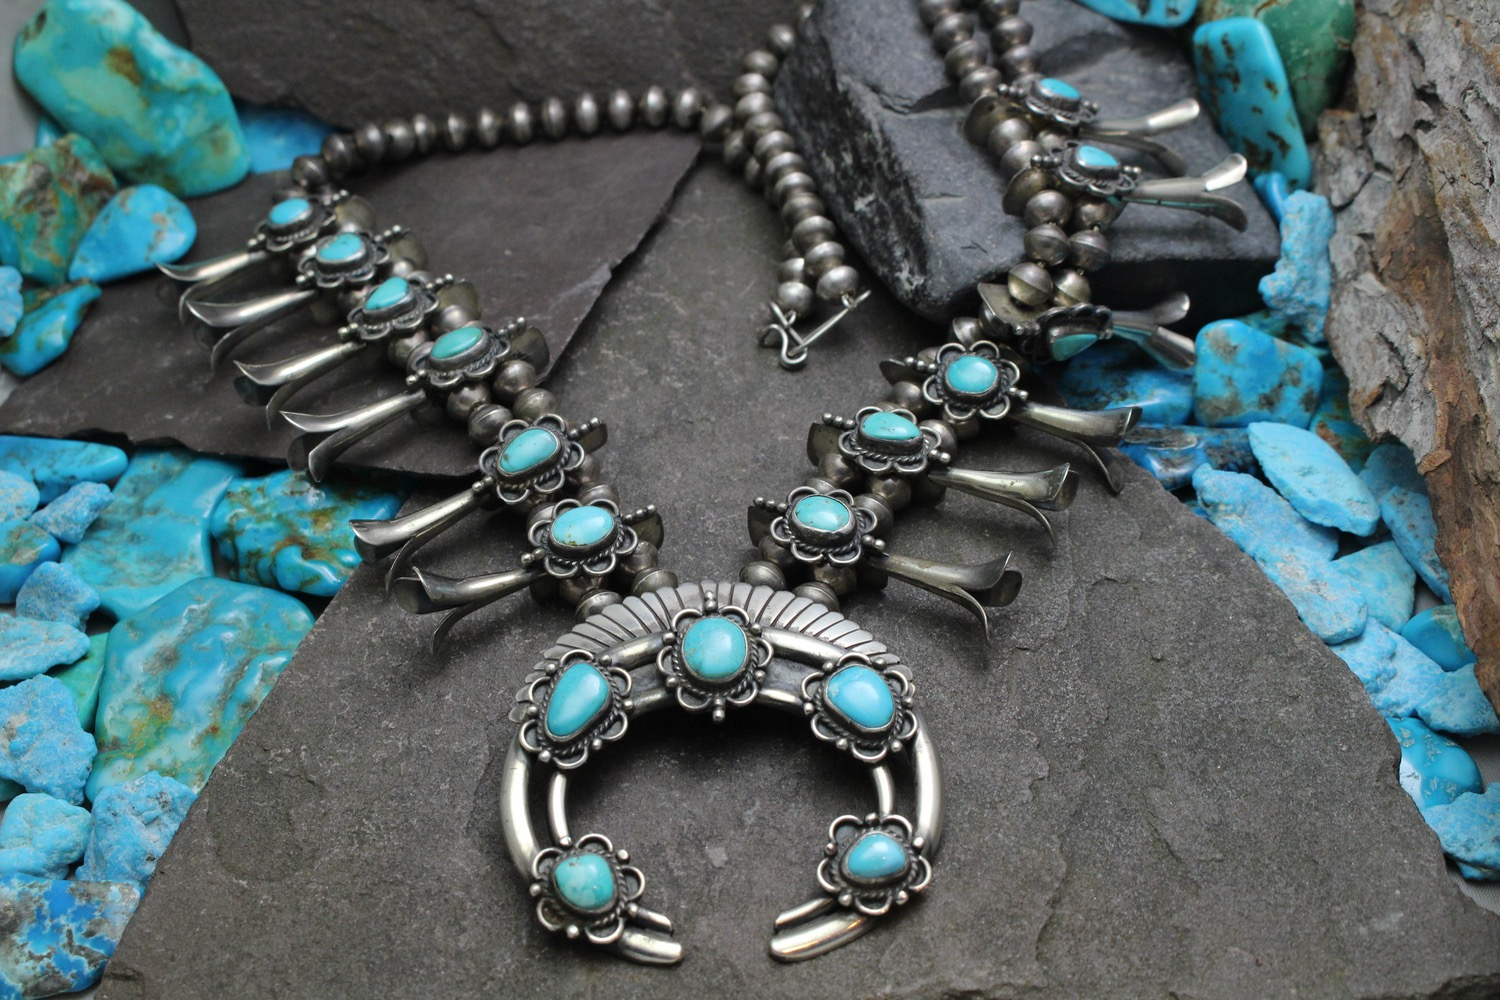 Turquoise Vintage Squash Blossom Necklace Photo for Global Pathways Jewelry